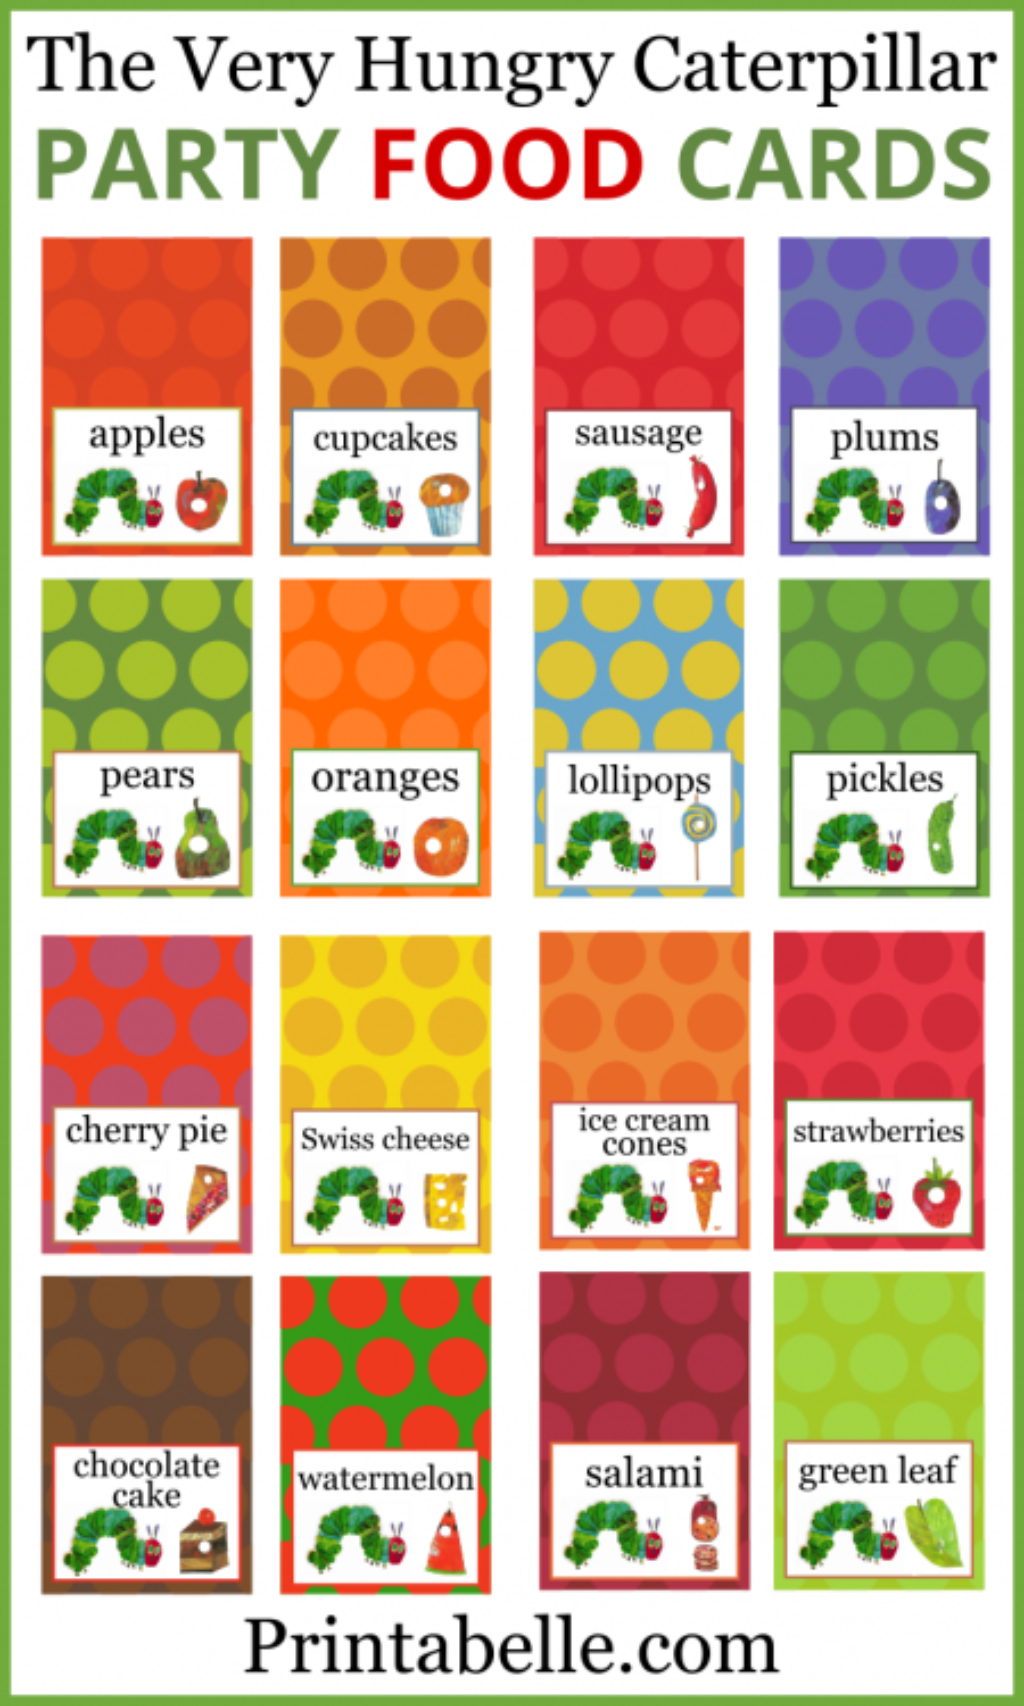 Very hungry caterpillar party guide free party printables at the very hungry caterpillar food cards free party printables at printabelle bookmarktalkfo Image collections